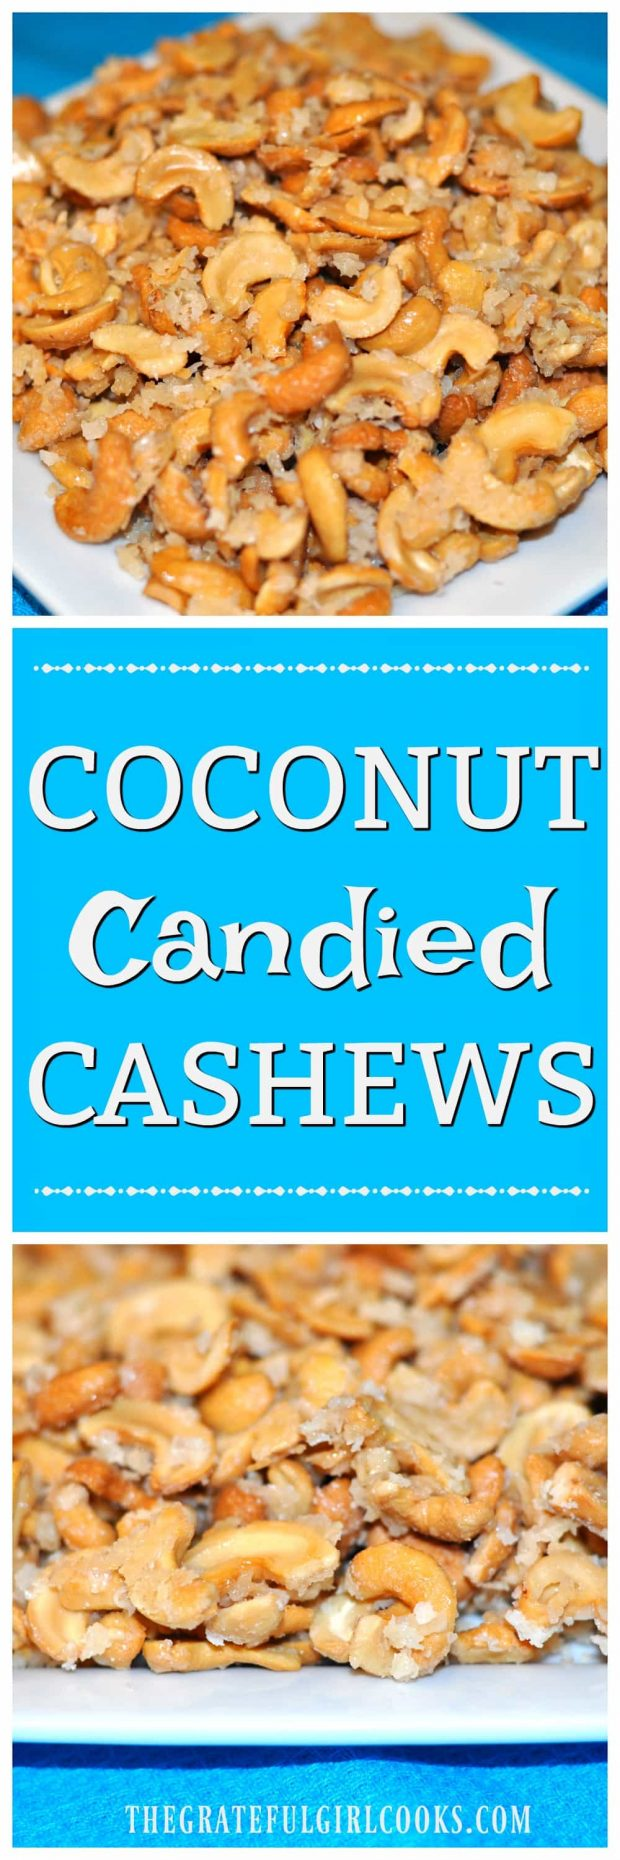 Coconut Candied Cashews / The Grateful Girl Cooks! These coconut candied cashews will be a popular item at any gathering where snacking is involved! Delicious!